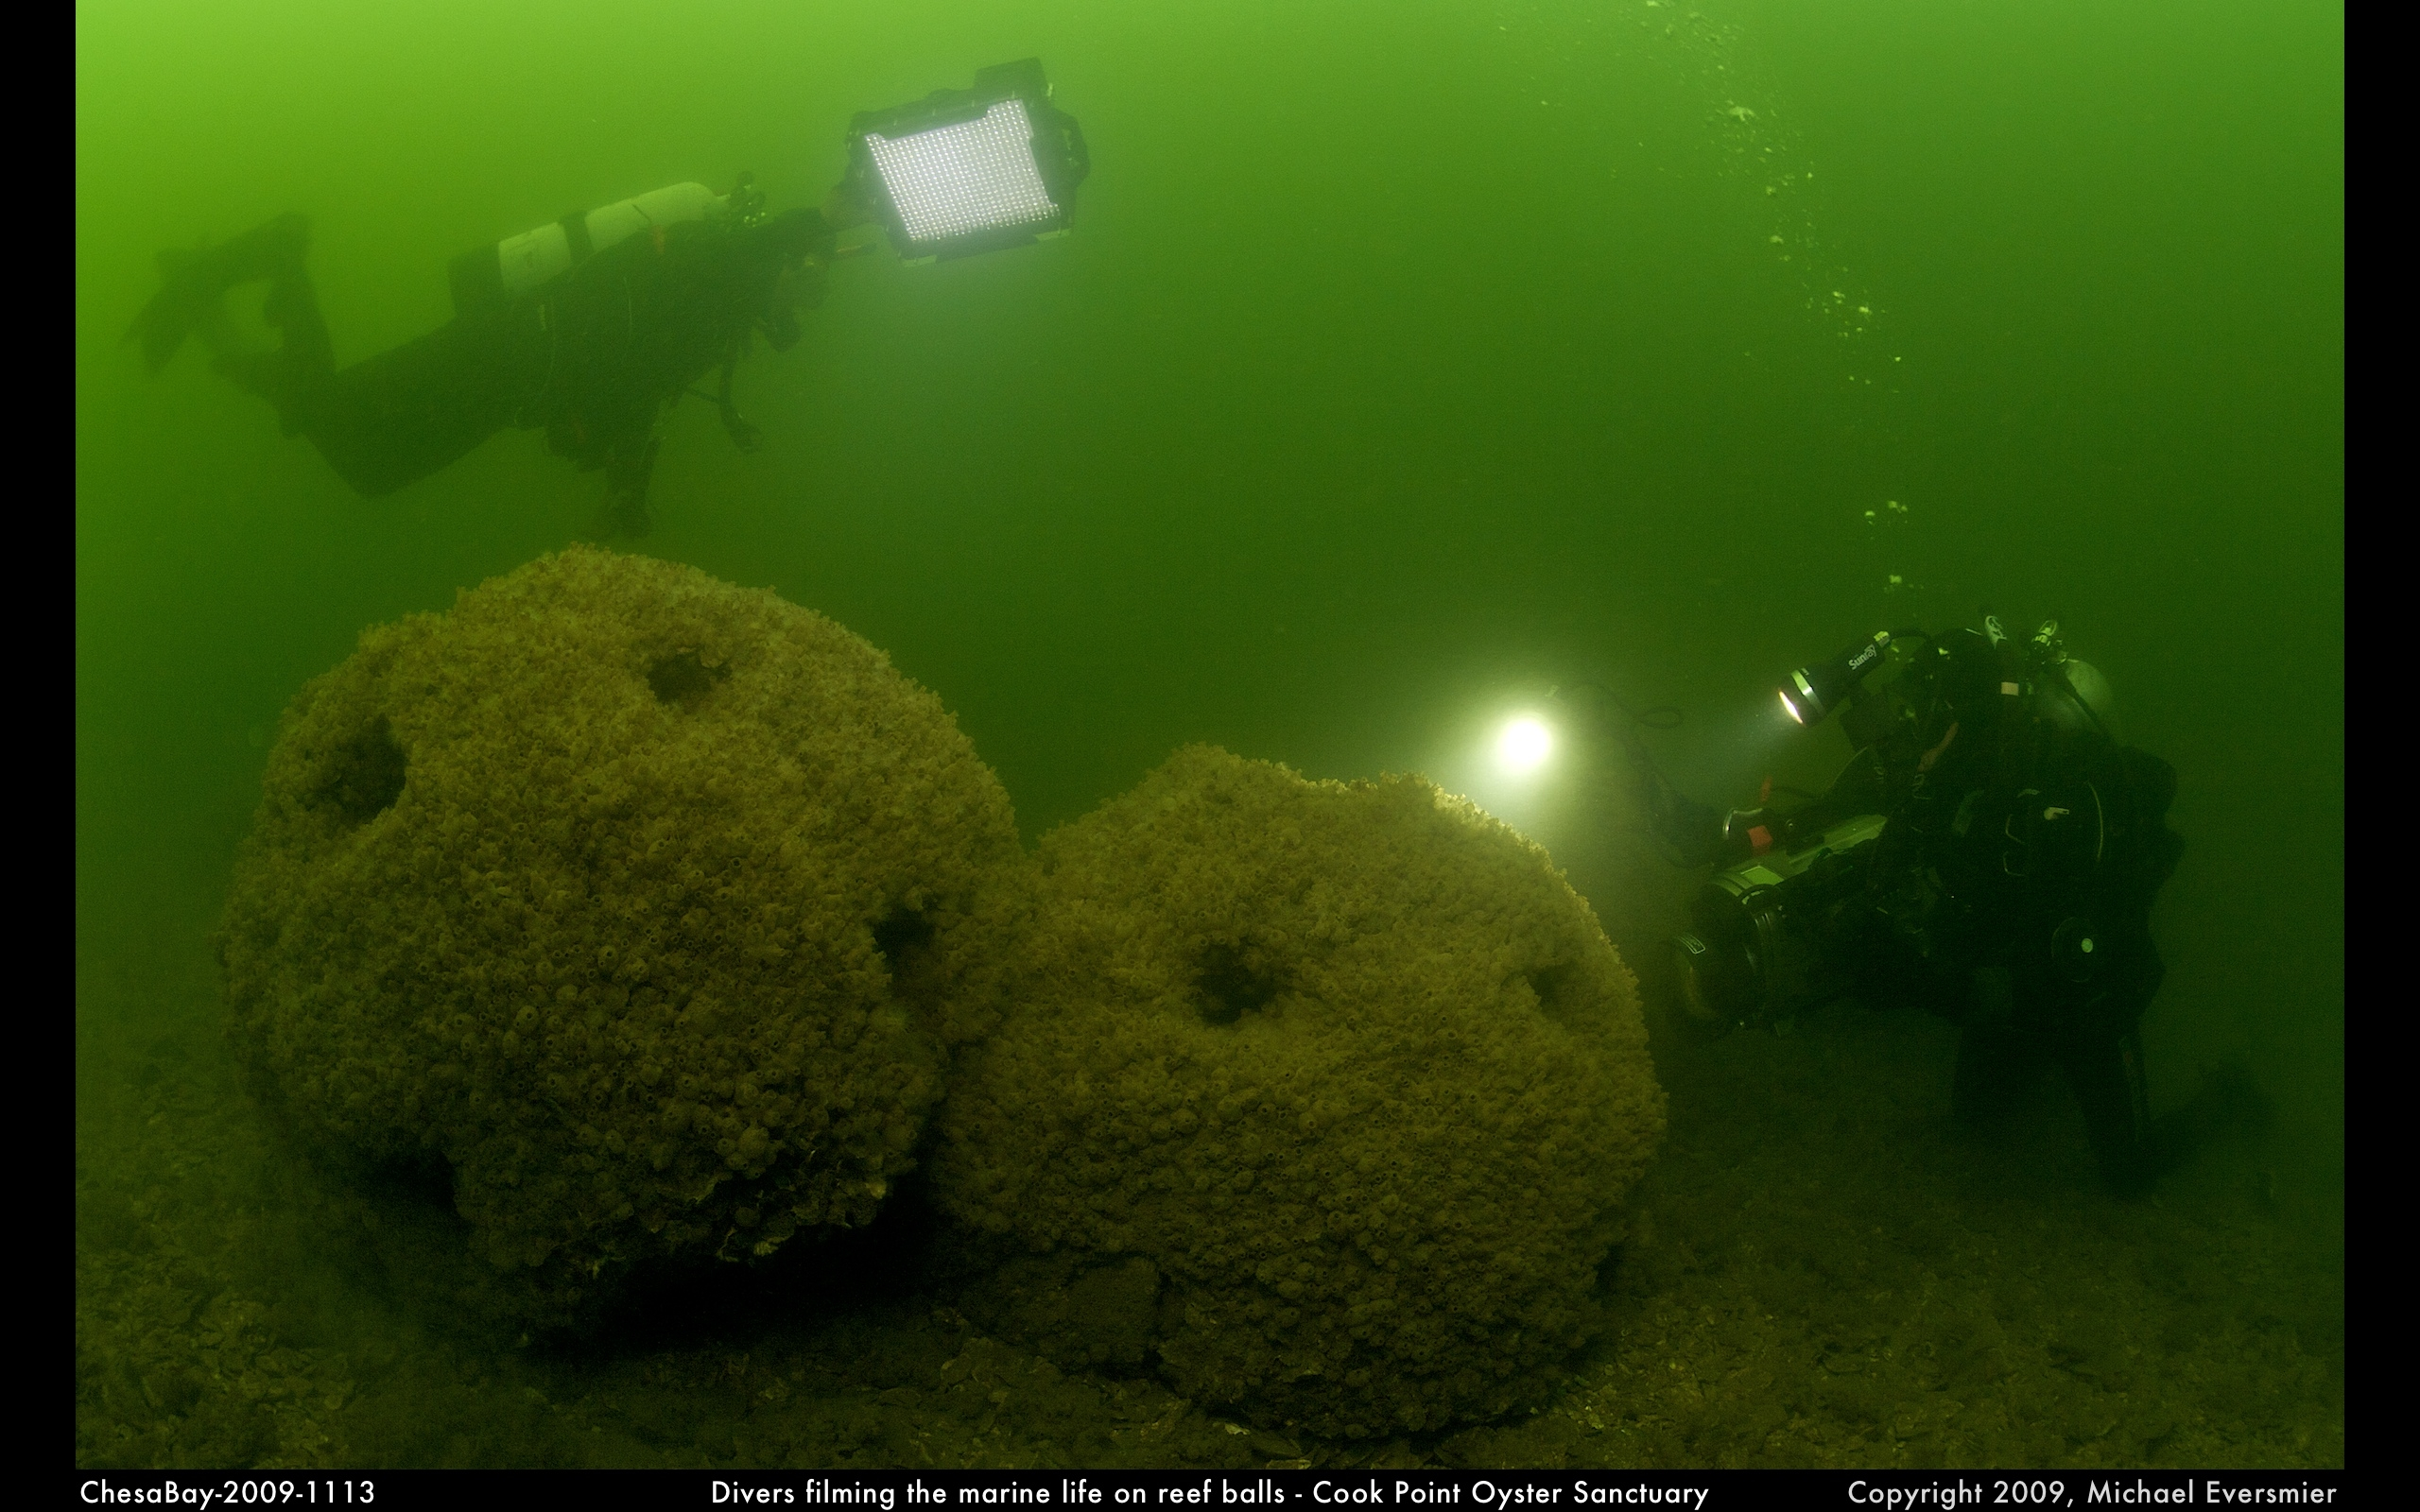 A classic Reef Ball deployment in Chesapeake Bay shows marine life developing around the balls, which is what the holes are for.